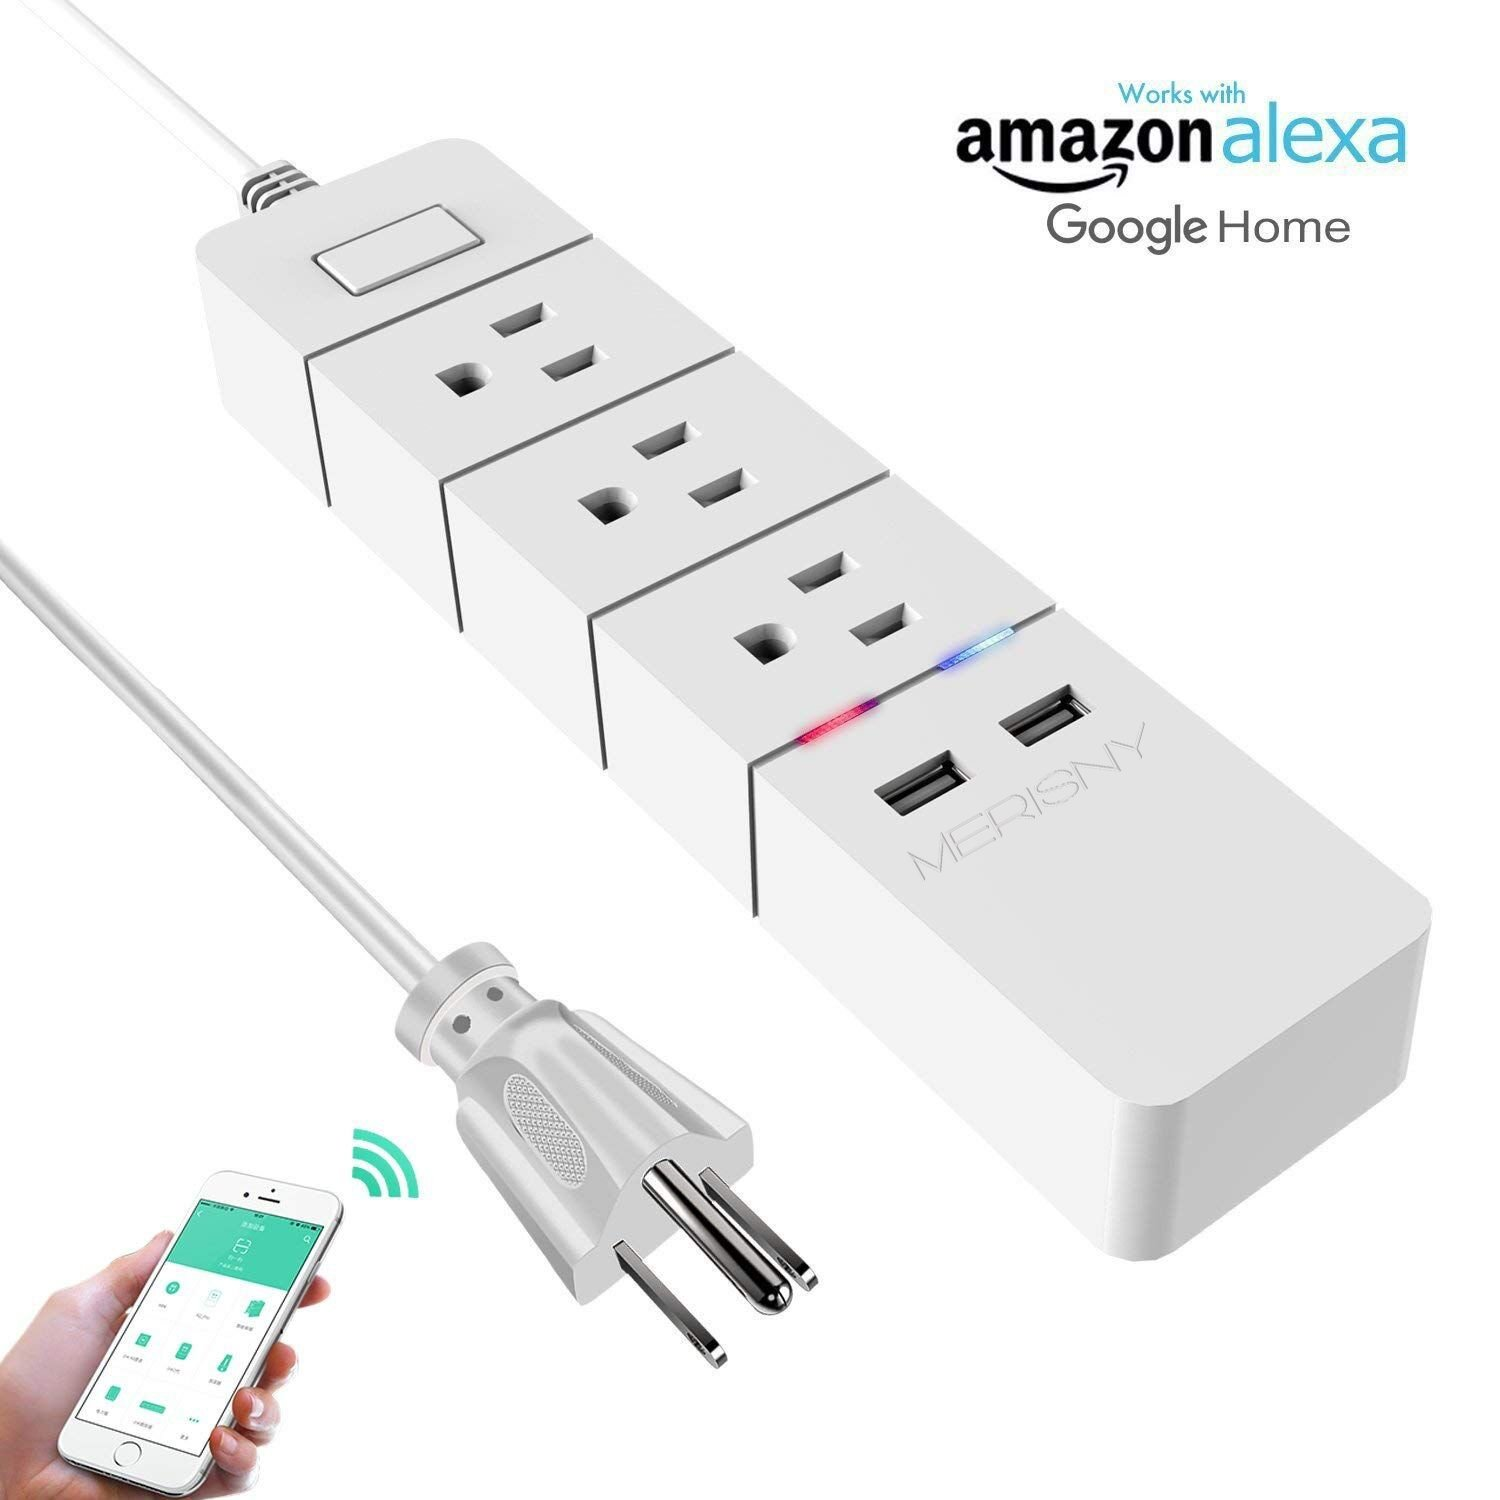 Merisny WiFi Power Strip Smart Surge Protector with Individual Control - Works with Alexa Google Home - Smart Surge Protector with USB - Remote Control by Smart Phone